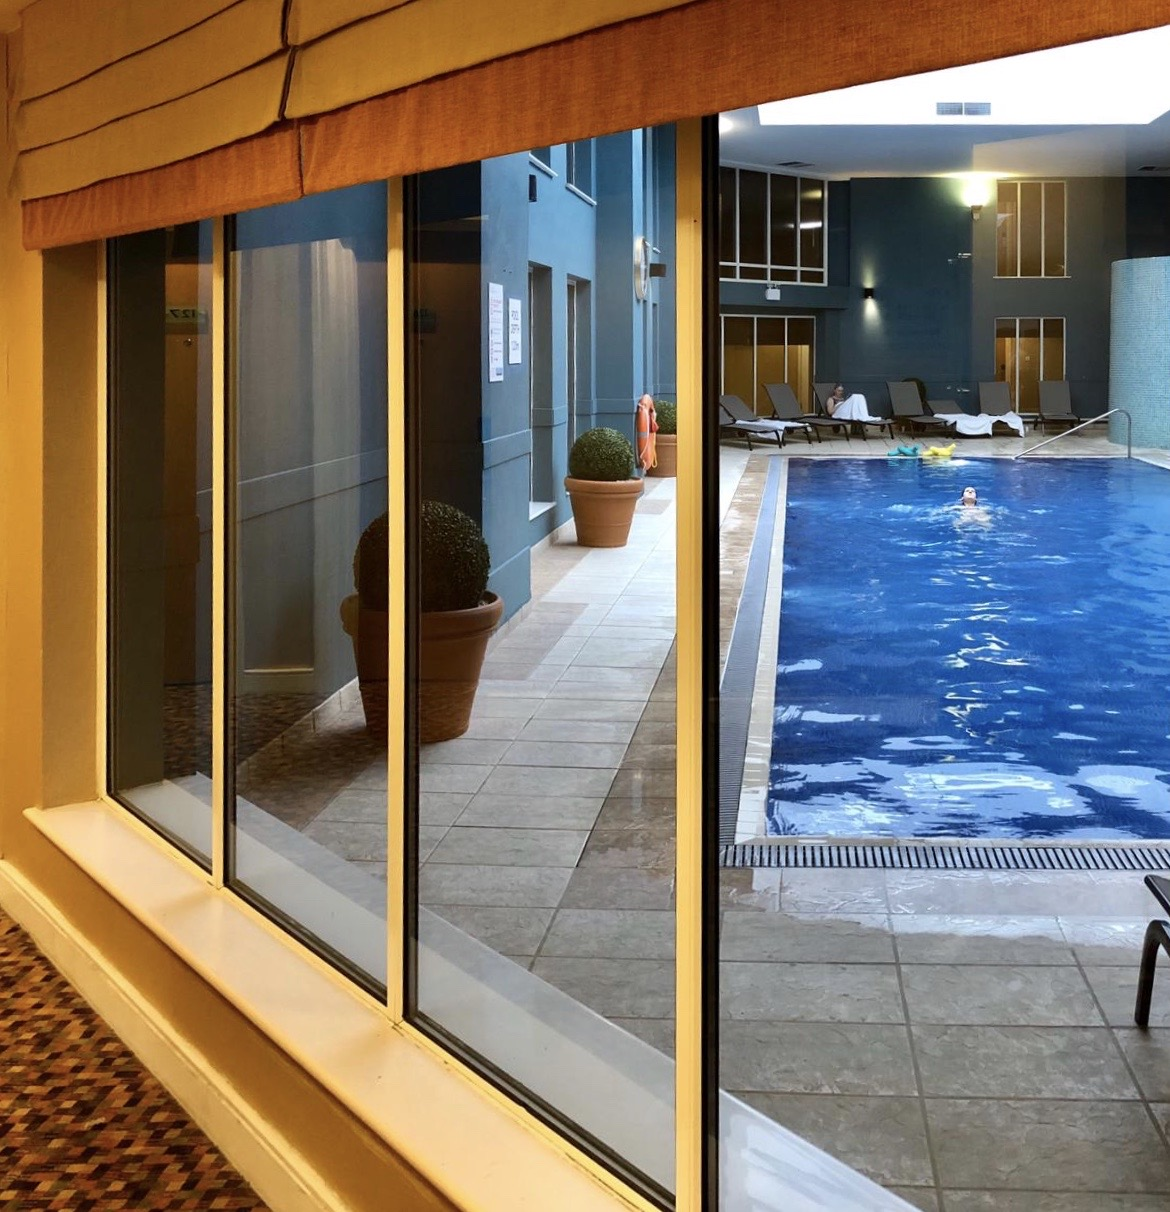 The Norton Park Hotel & Spa - A Perfect Family Getaway: Pool area with relaxing loungers